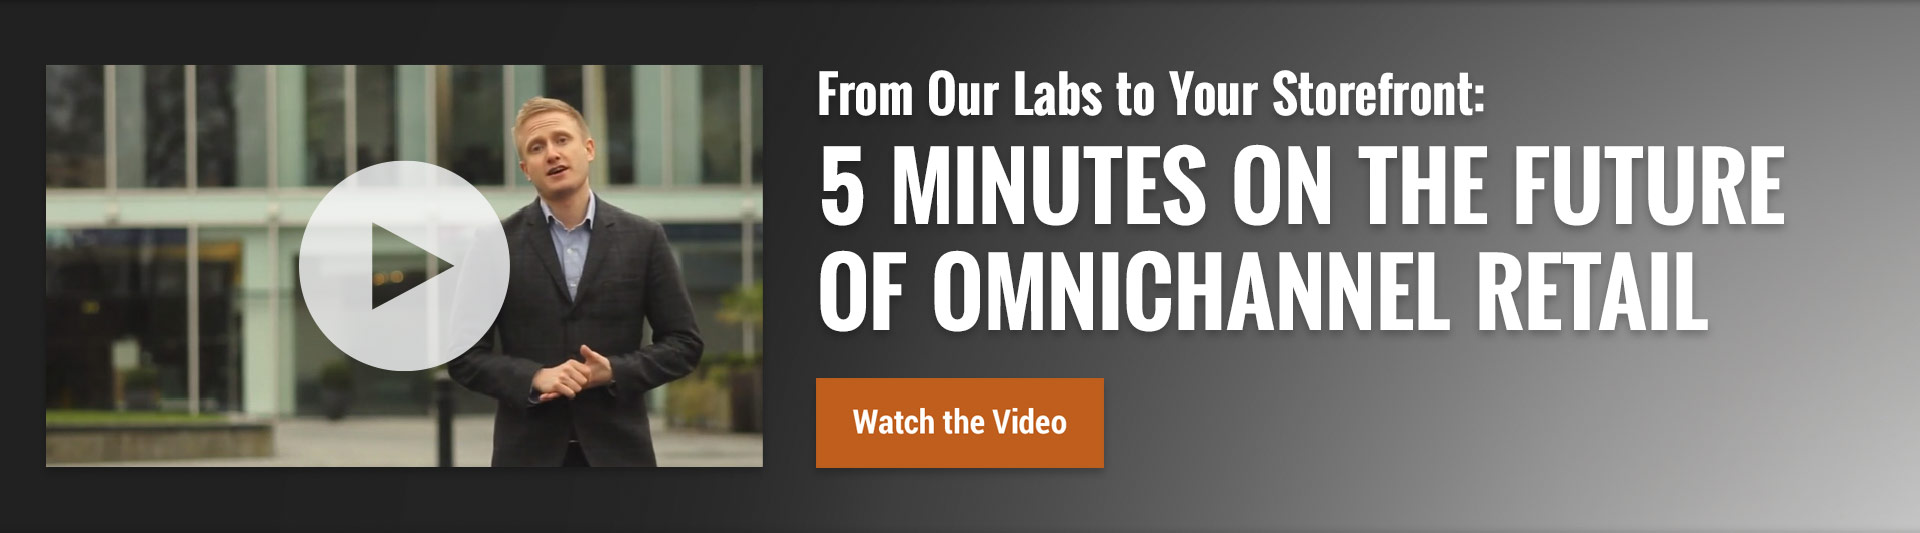 From Our Labs to Your Storefront: 5 Minutes on the Future of Omnichannel Retail